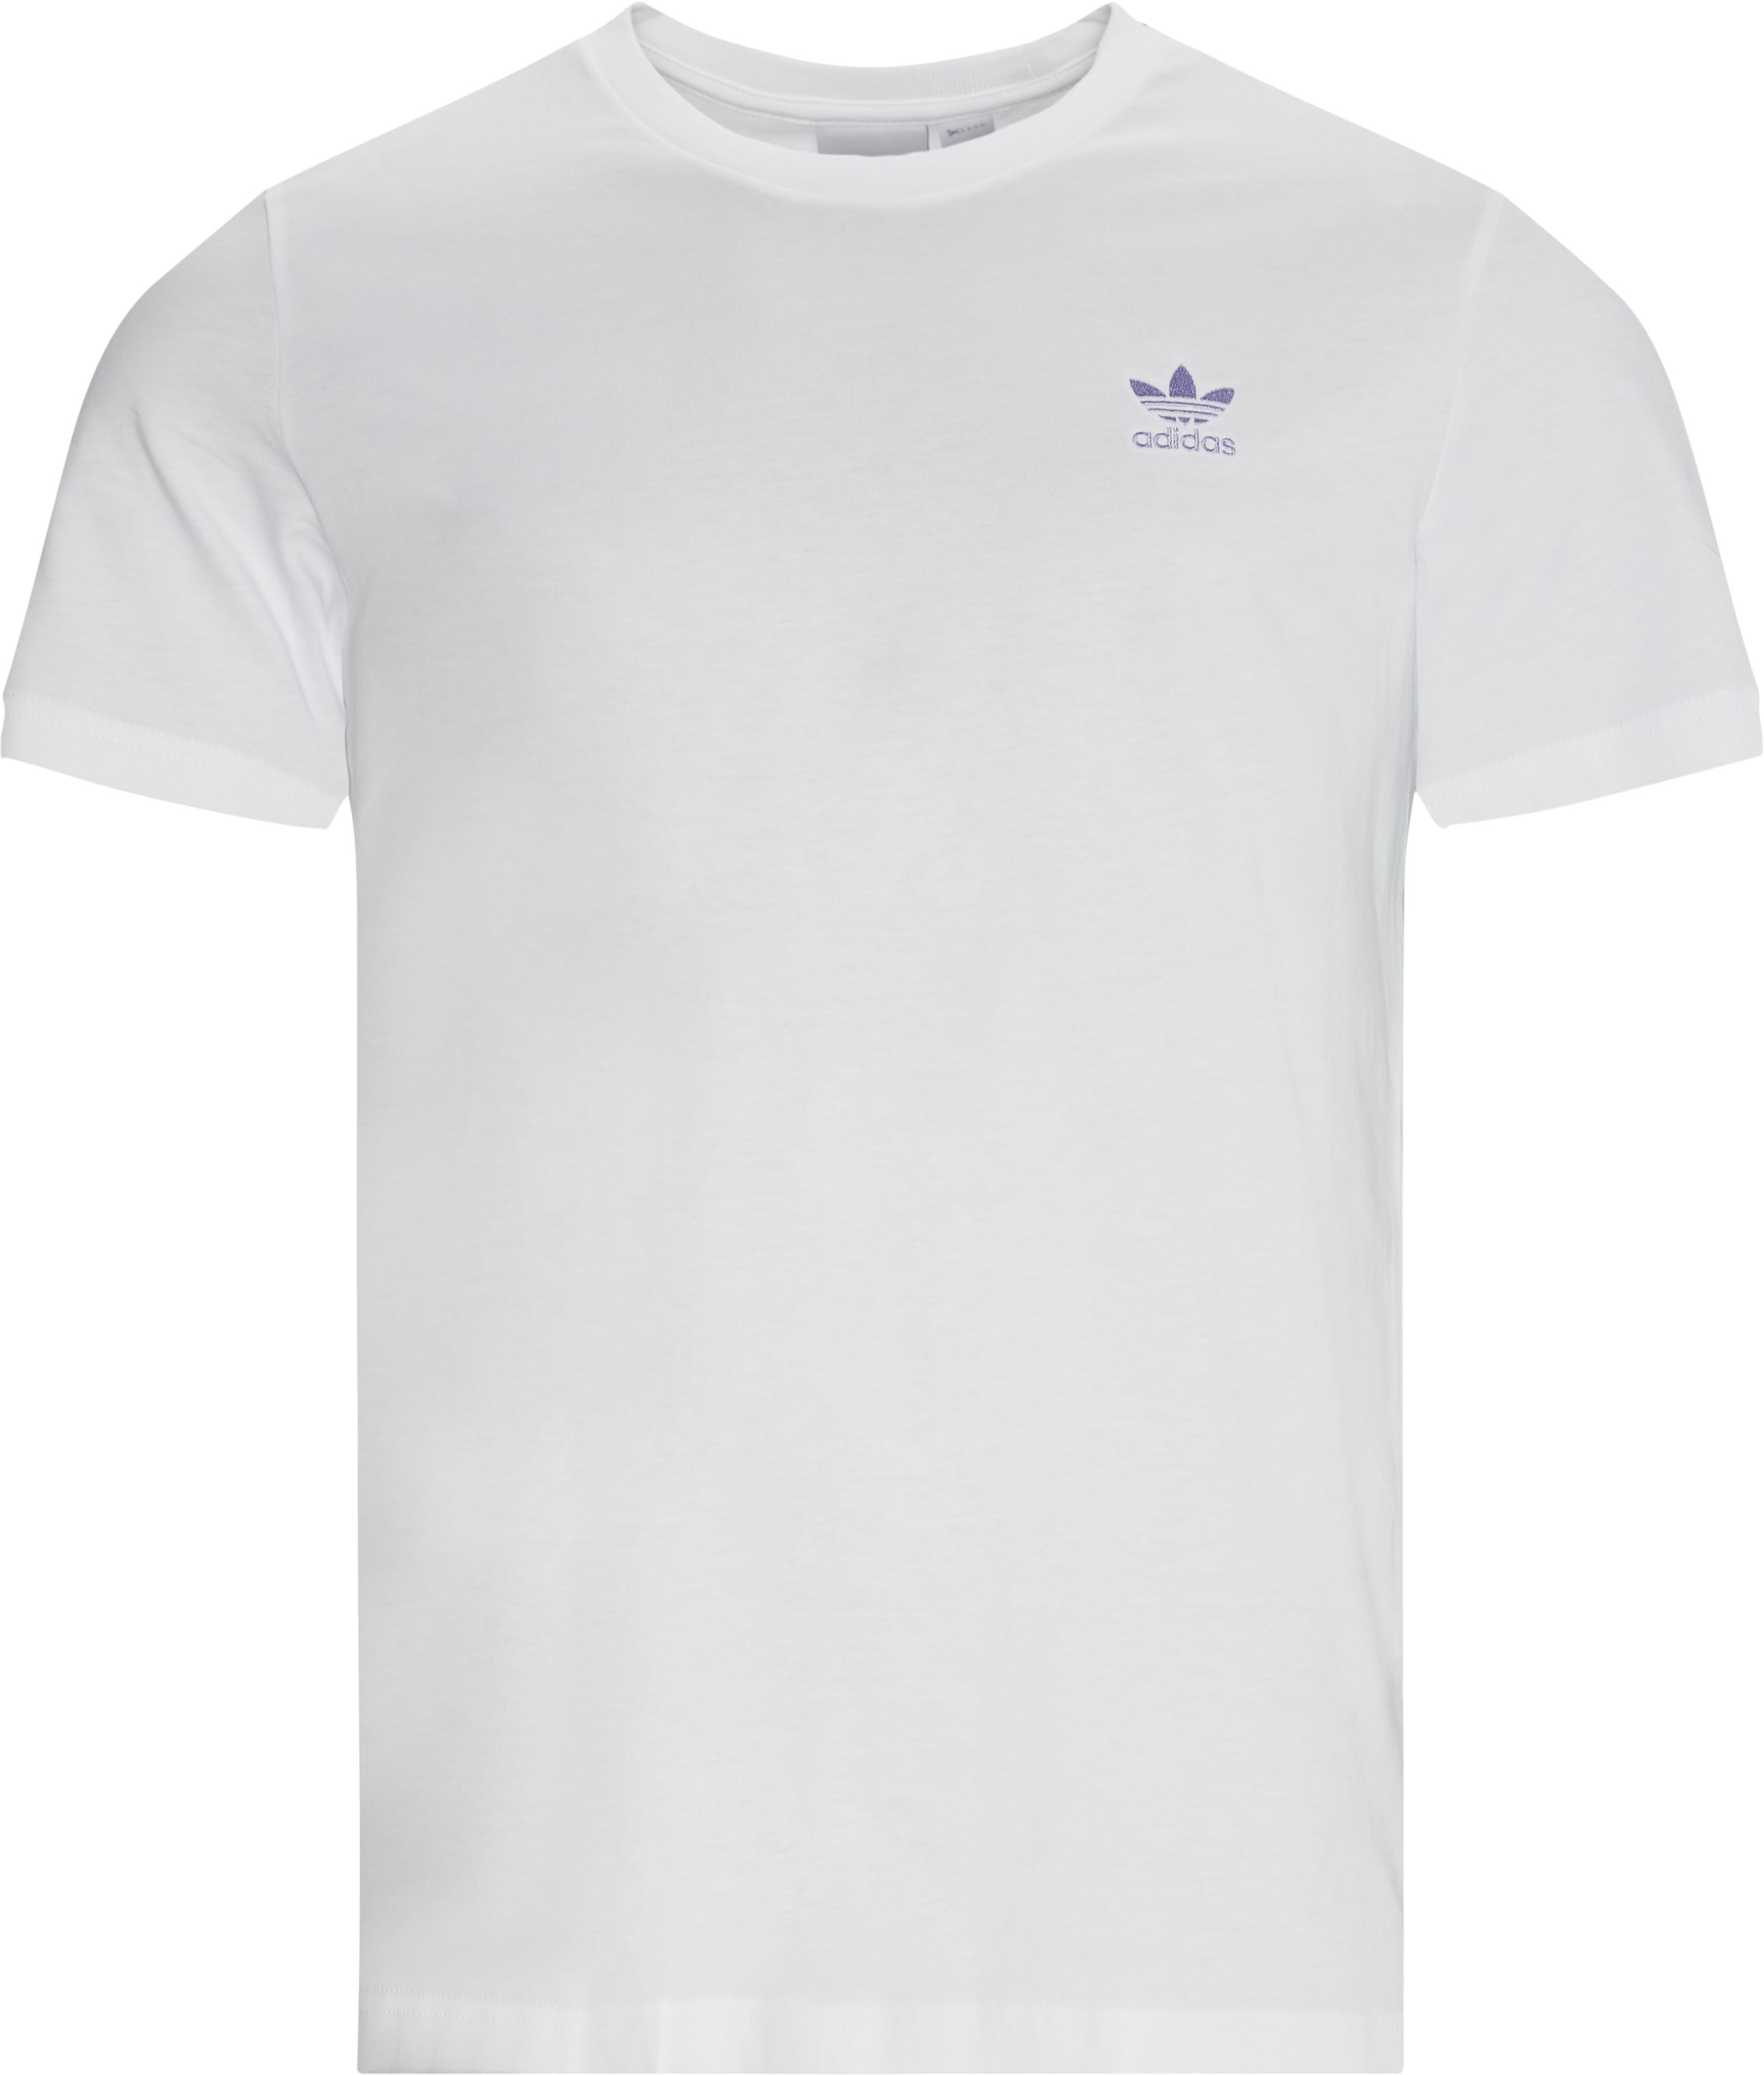 Essential Tee - T-shirts - Regular - Hvid